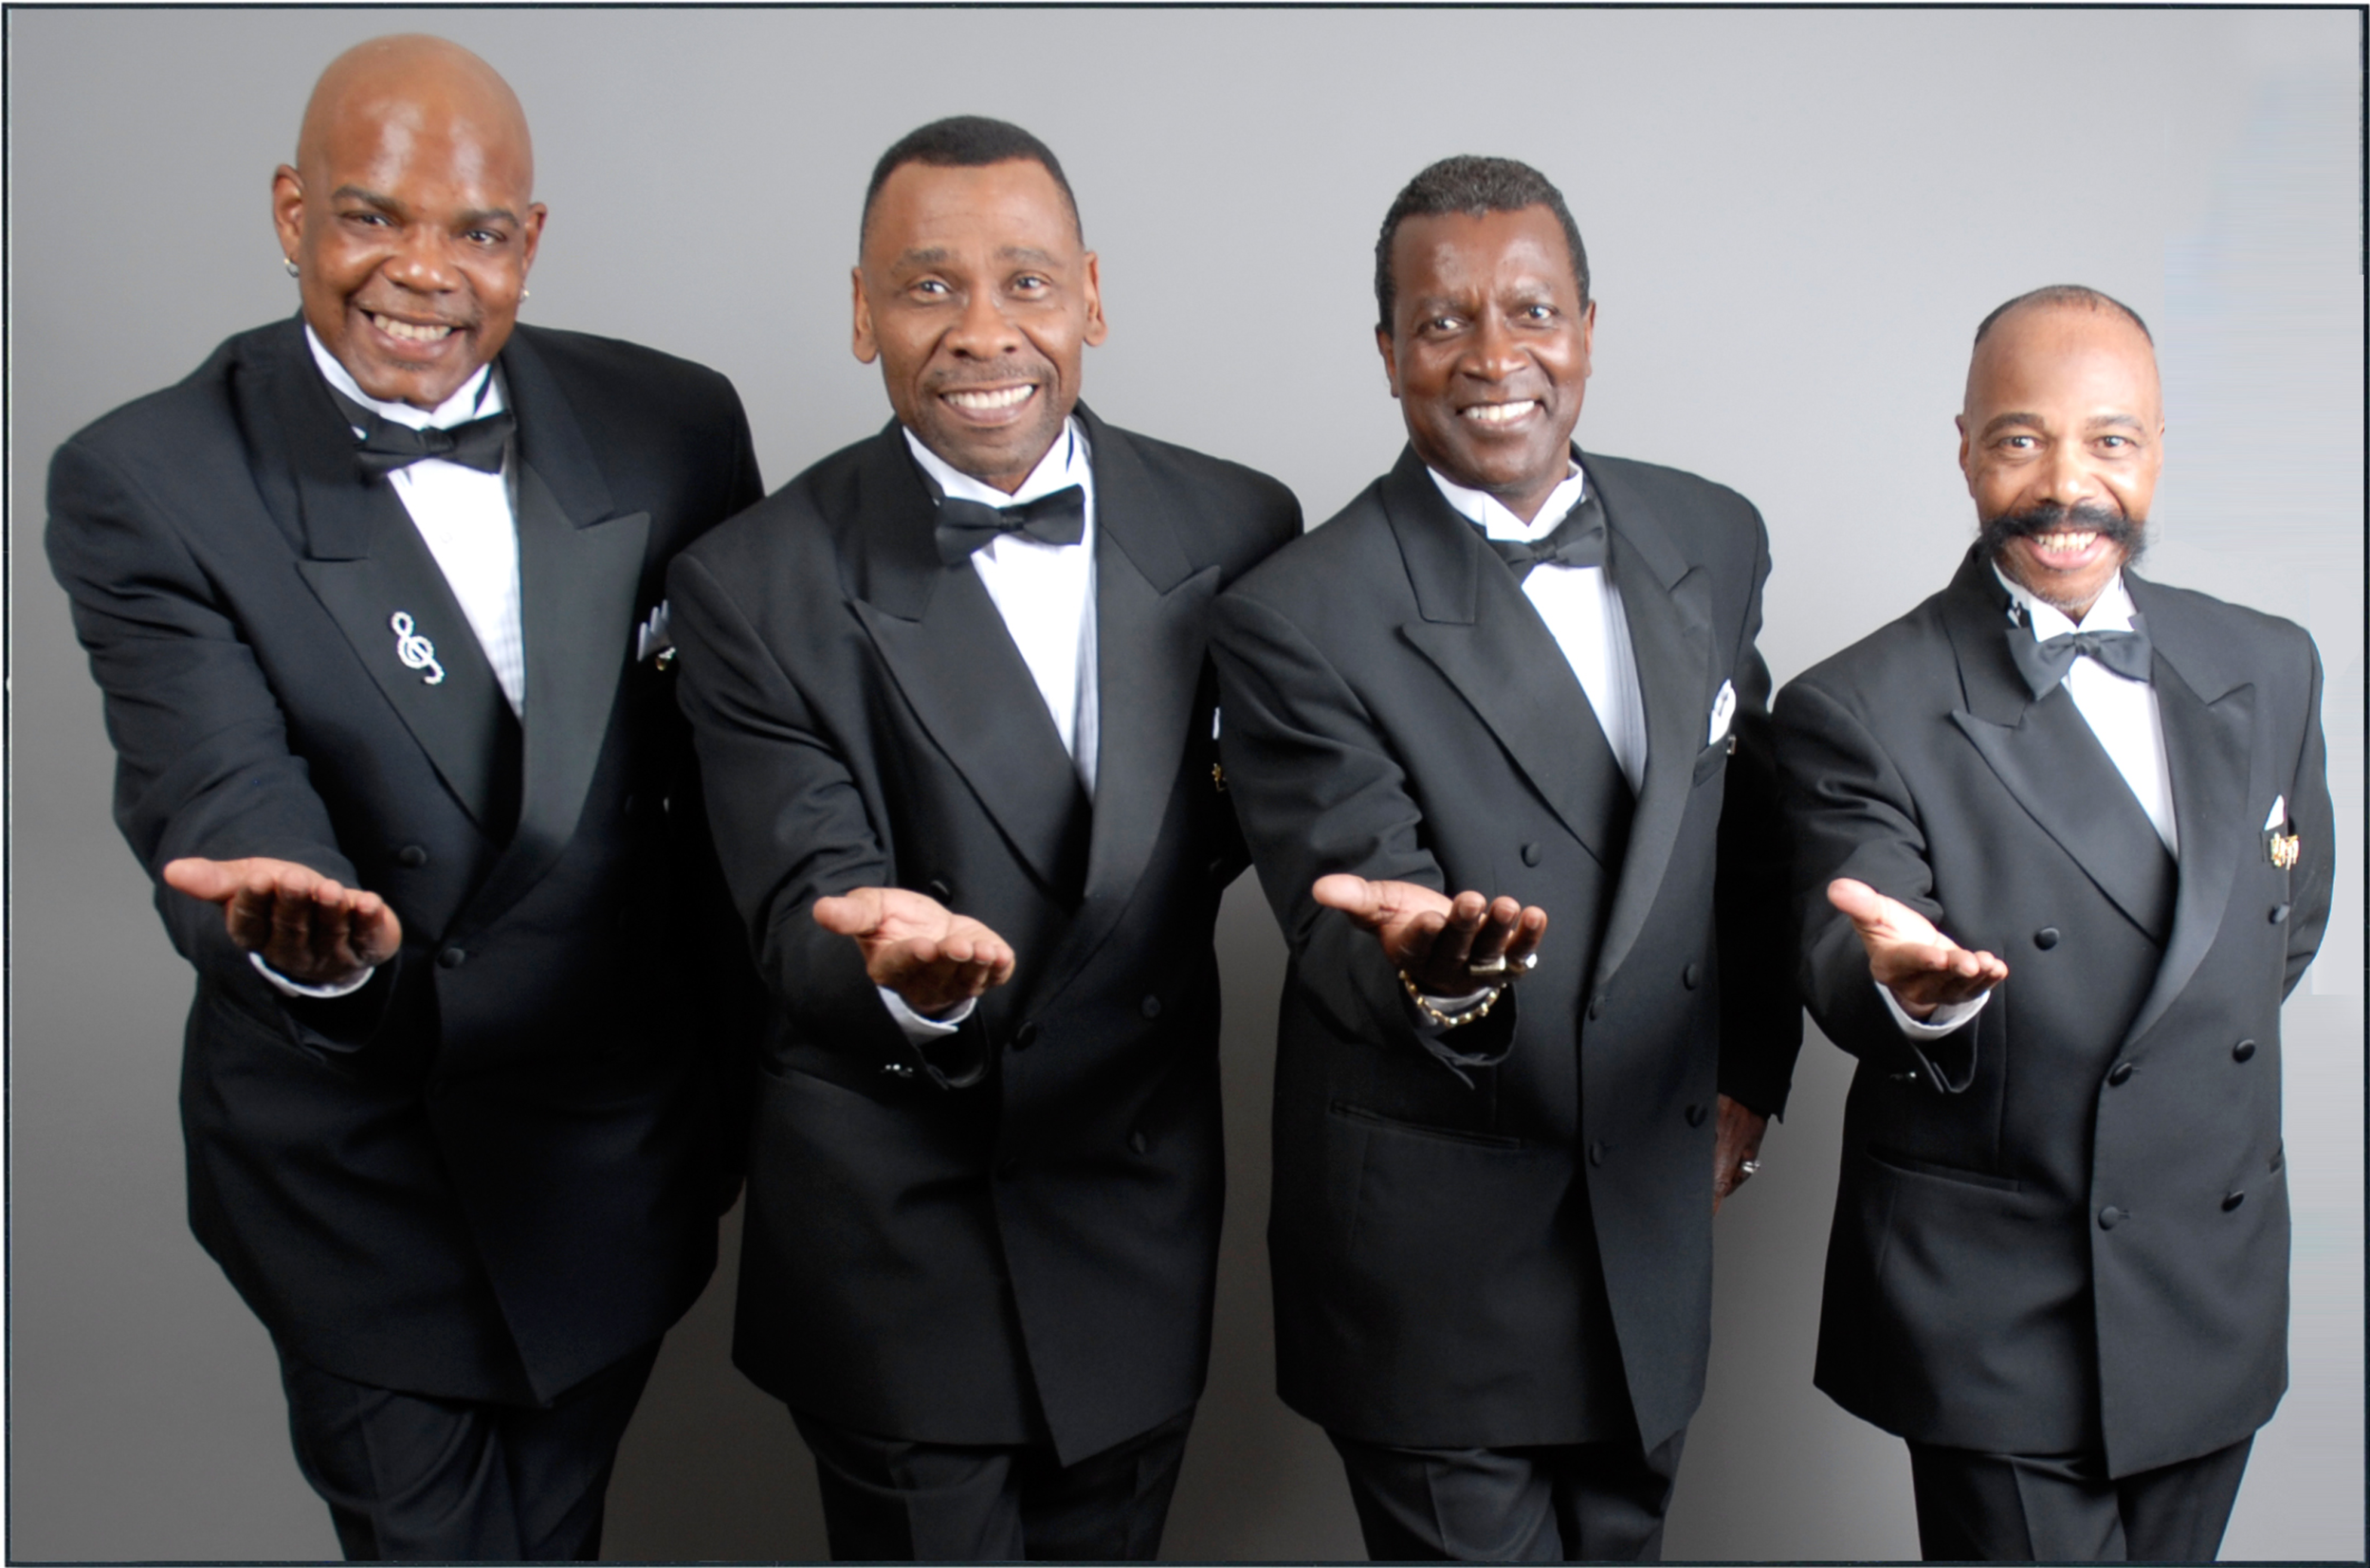 The Drifters - Image.png